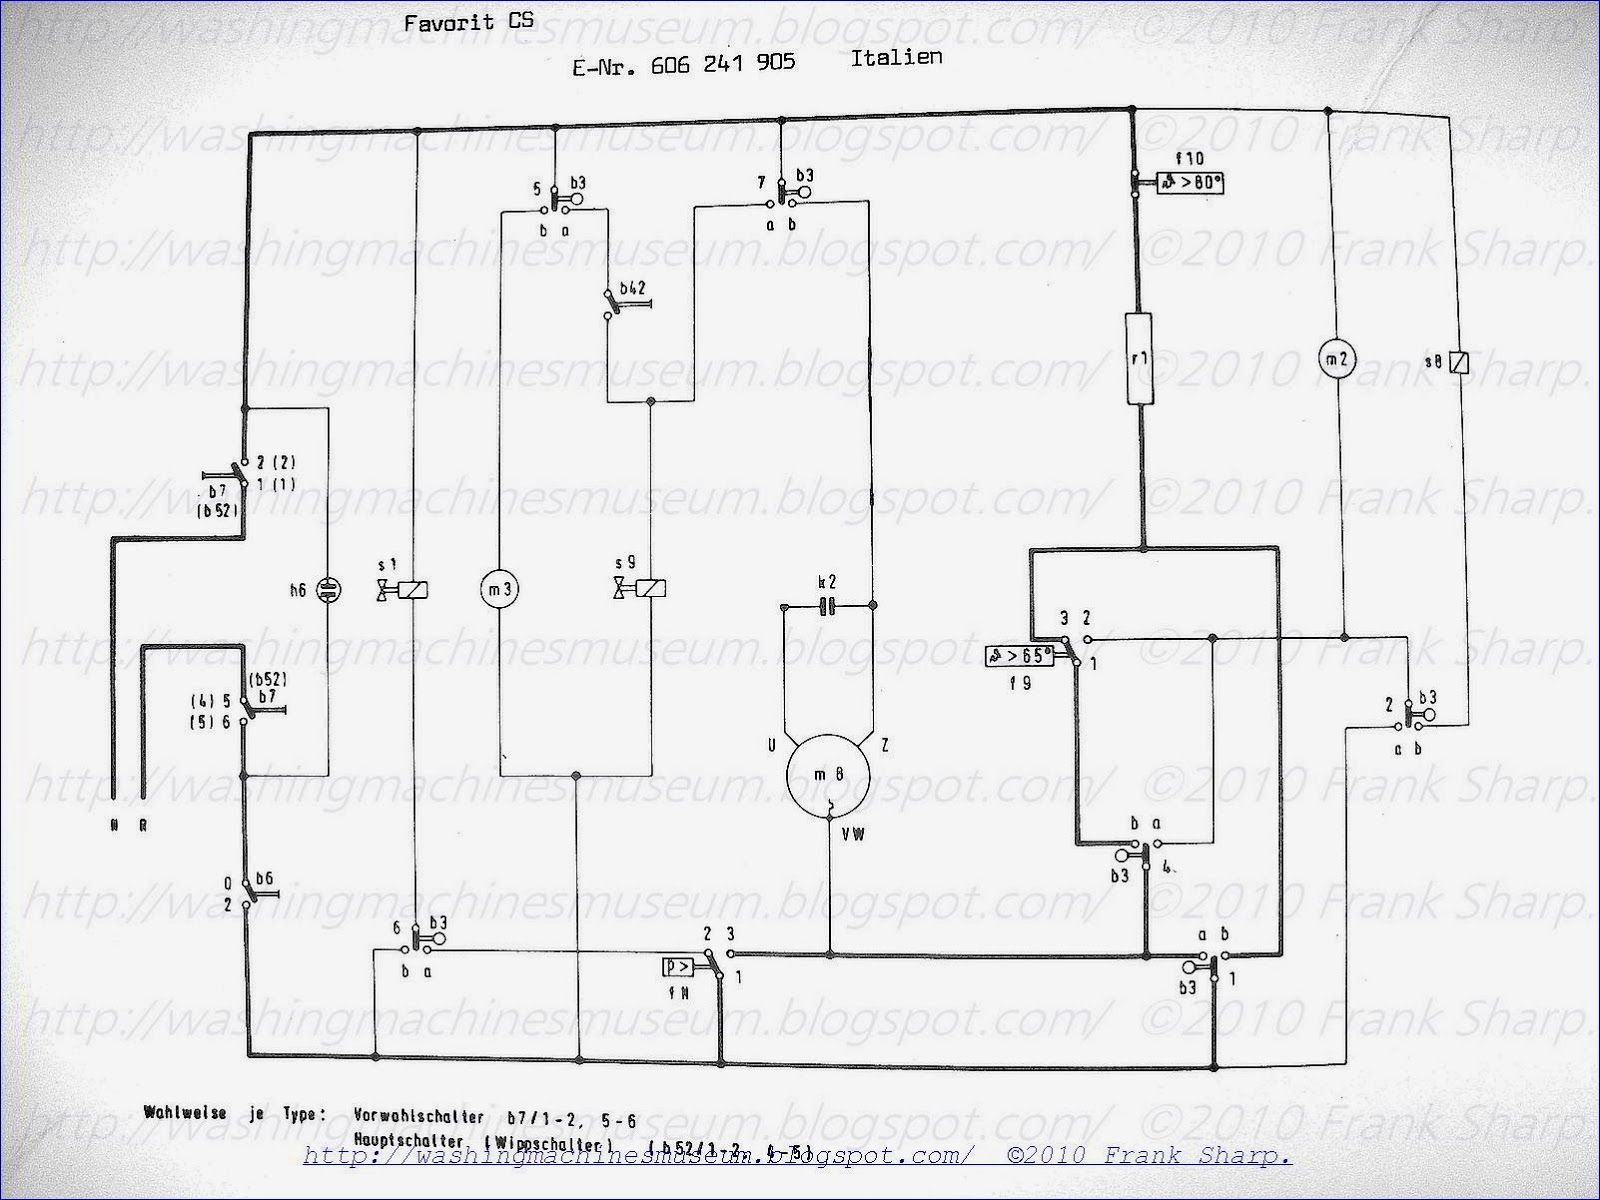 washing machine wiring diagram and schematics Download-AEG FAVORIT CS ITALIEN SCHEMATIC DIAGRAM 20-l